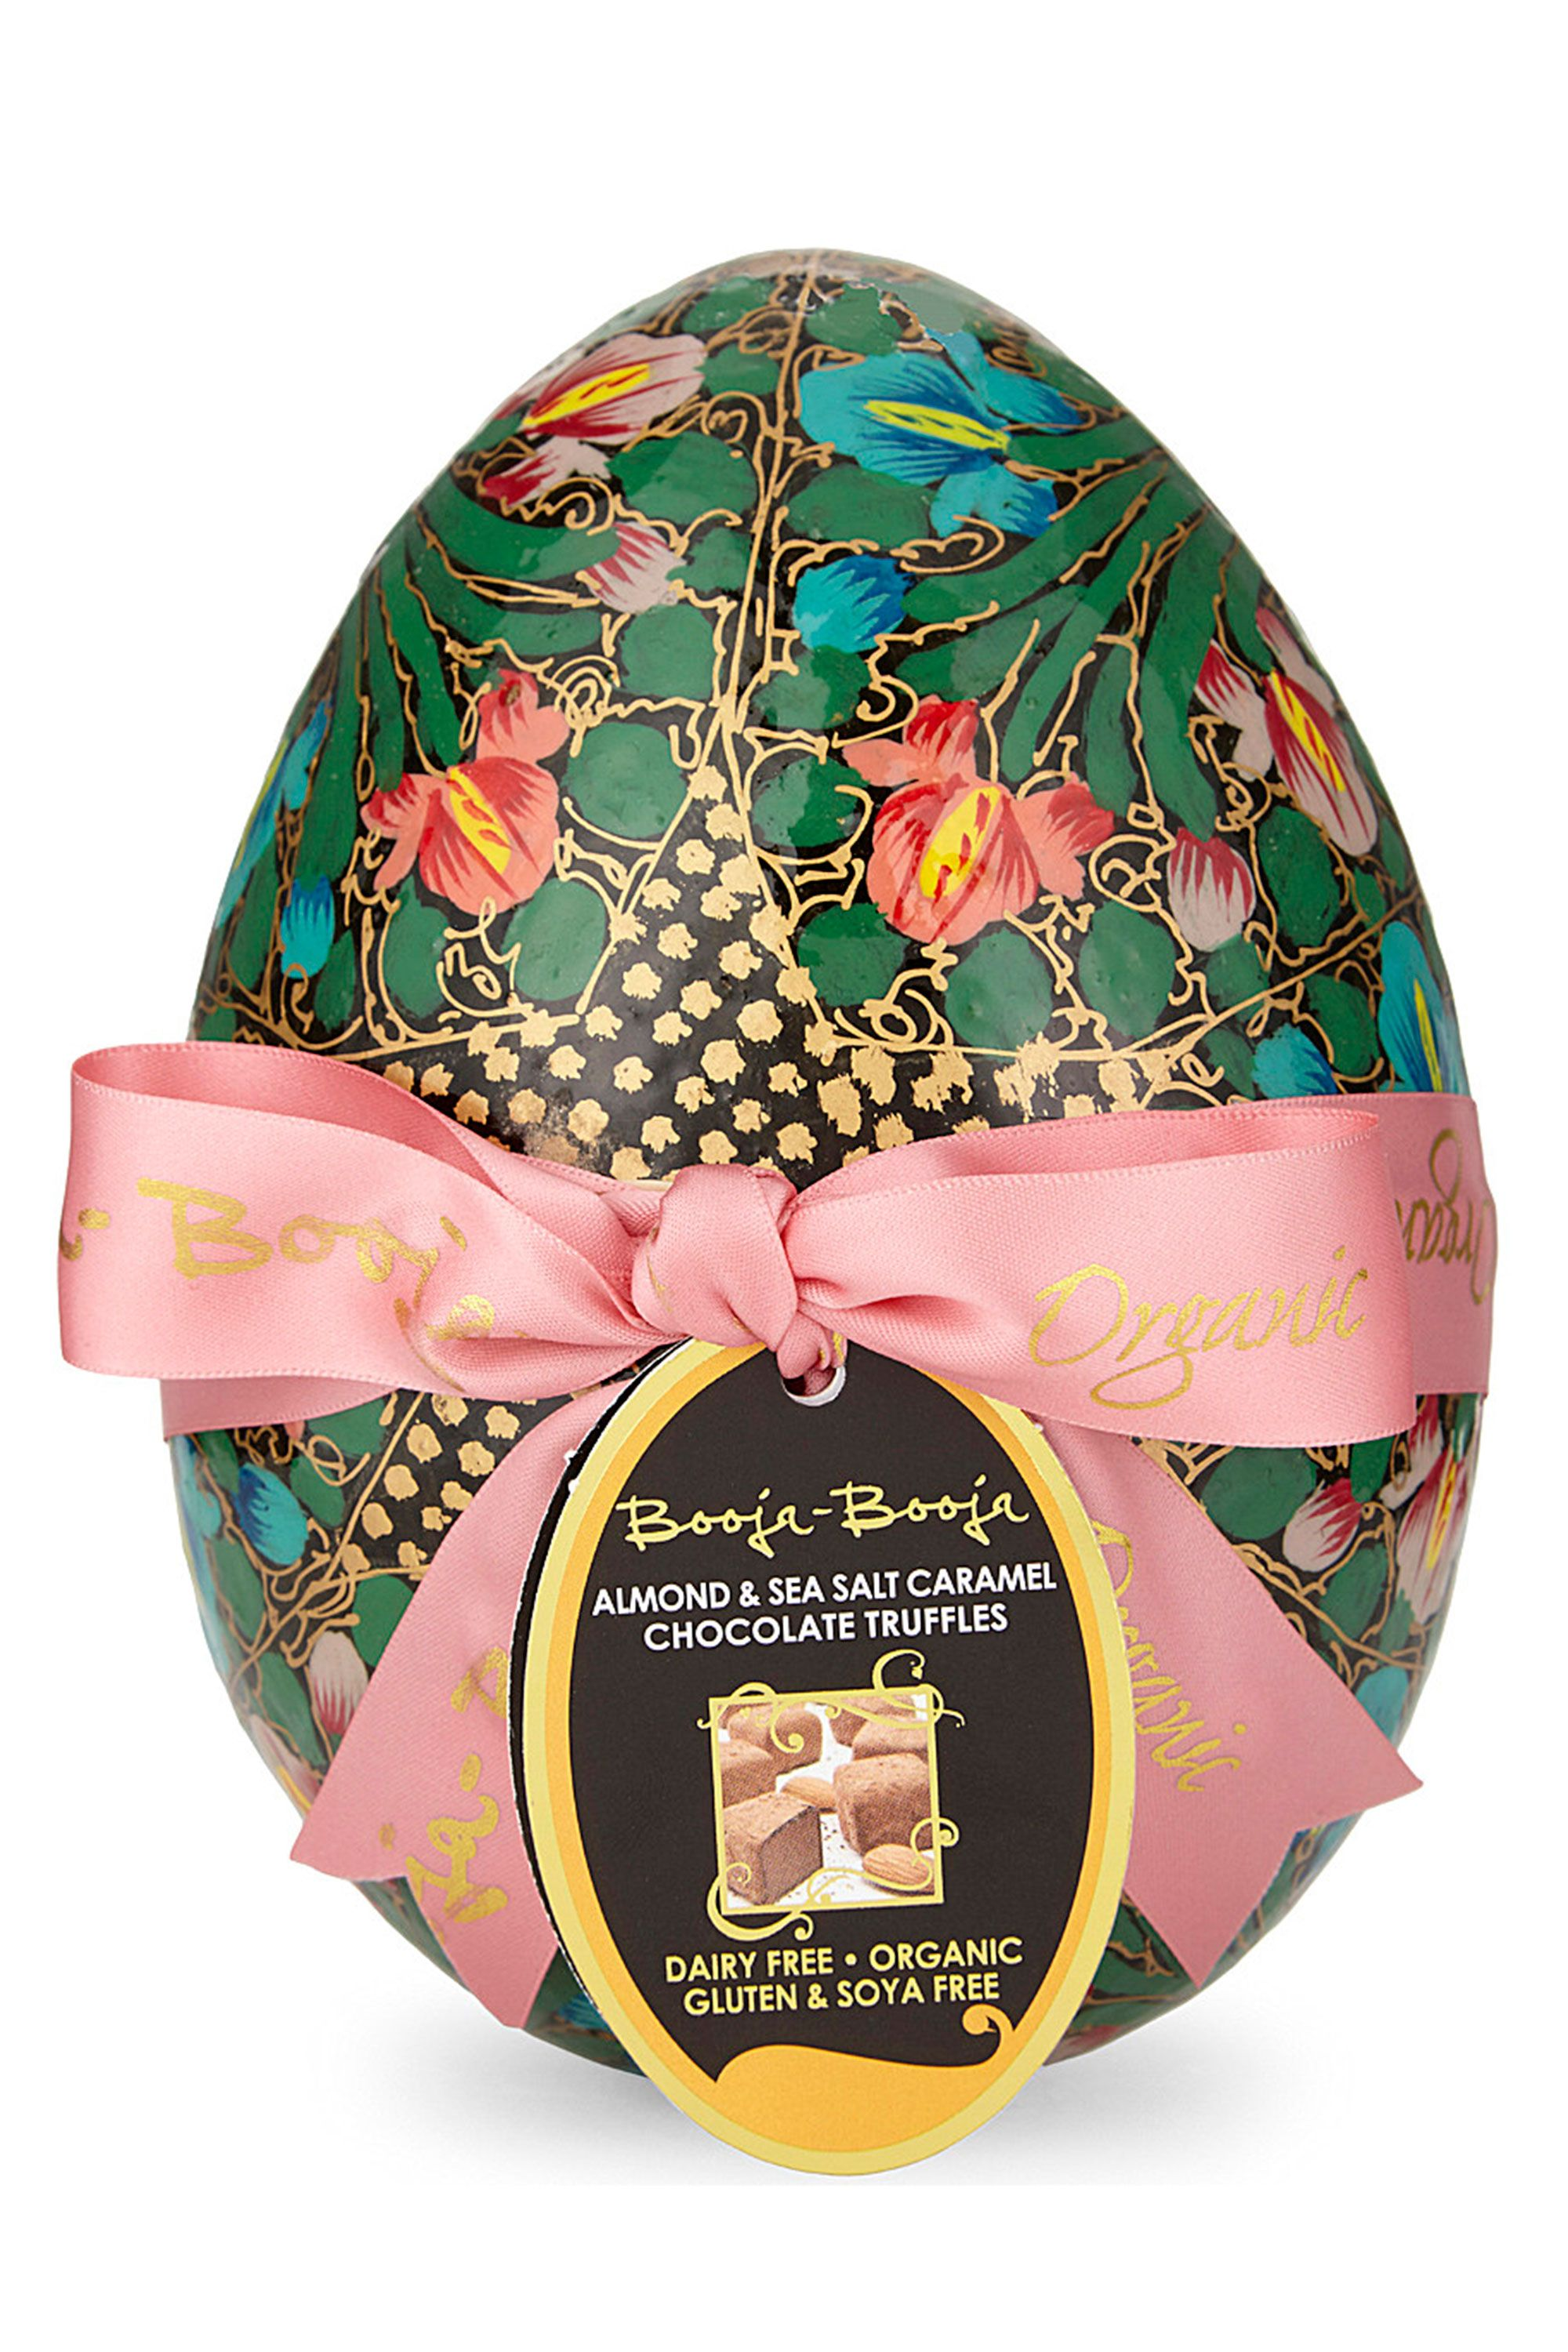 Best luxury easter eggs - Booja Booja dairy free easter egg